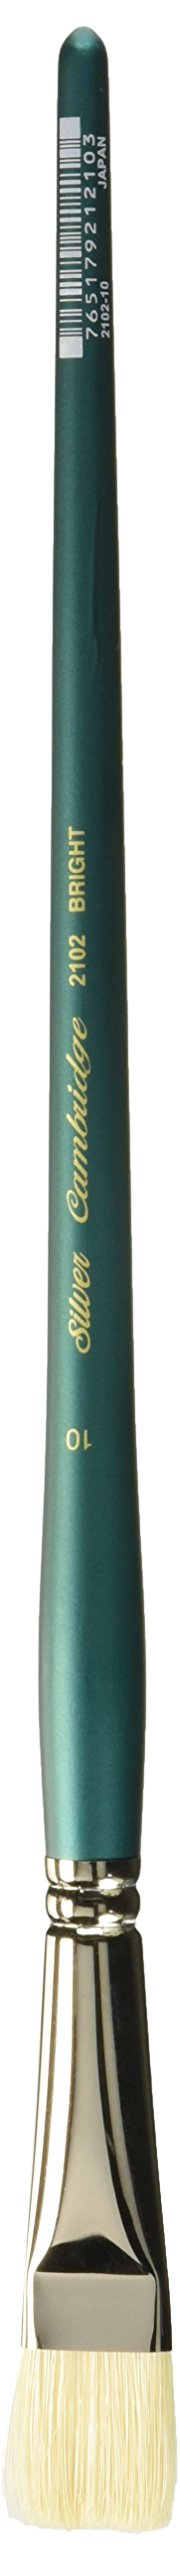 Silver Brush 2102-10 Cambridge White Bristle and Synthetic Long Handle Filament Blend Brush, Bright, Size 10